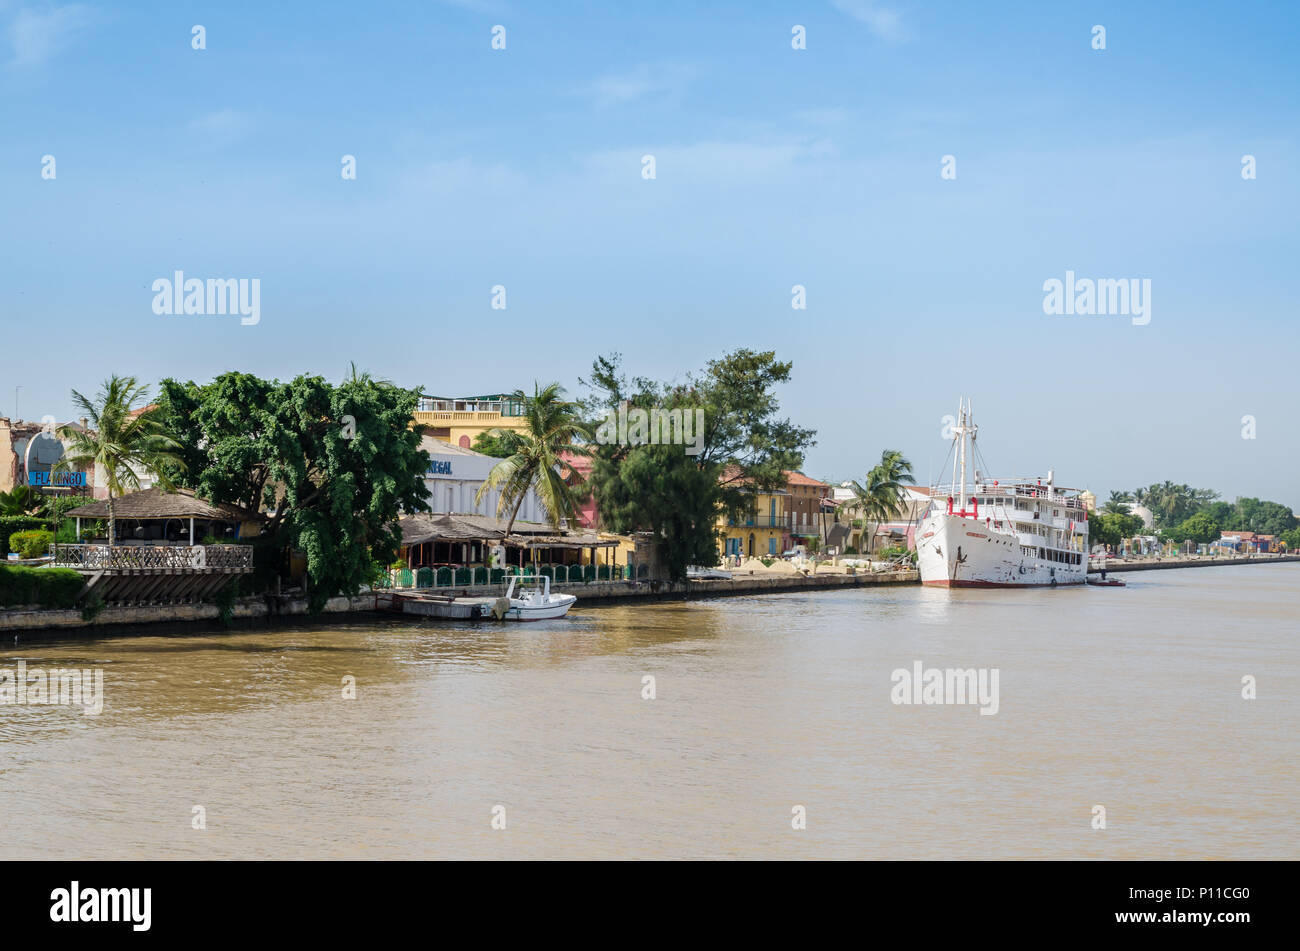 Senegal River with waterfront and historical ship in town Staint-Louis - Stock Image